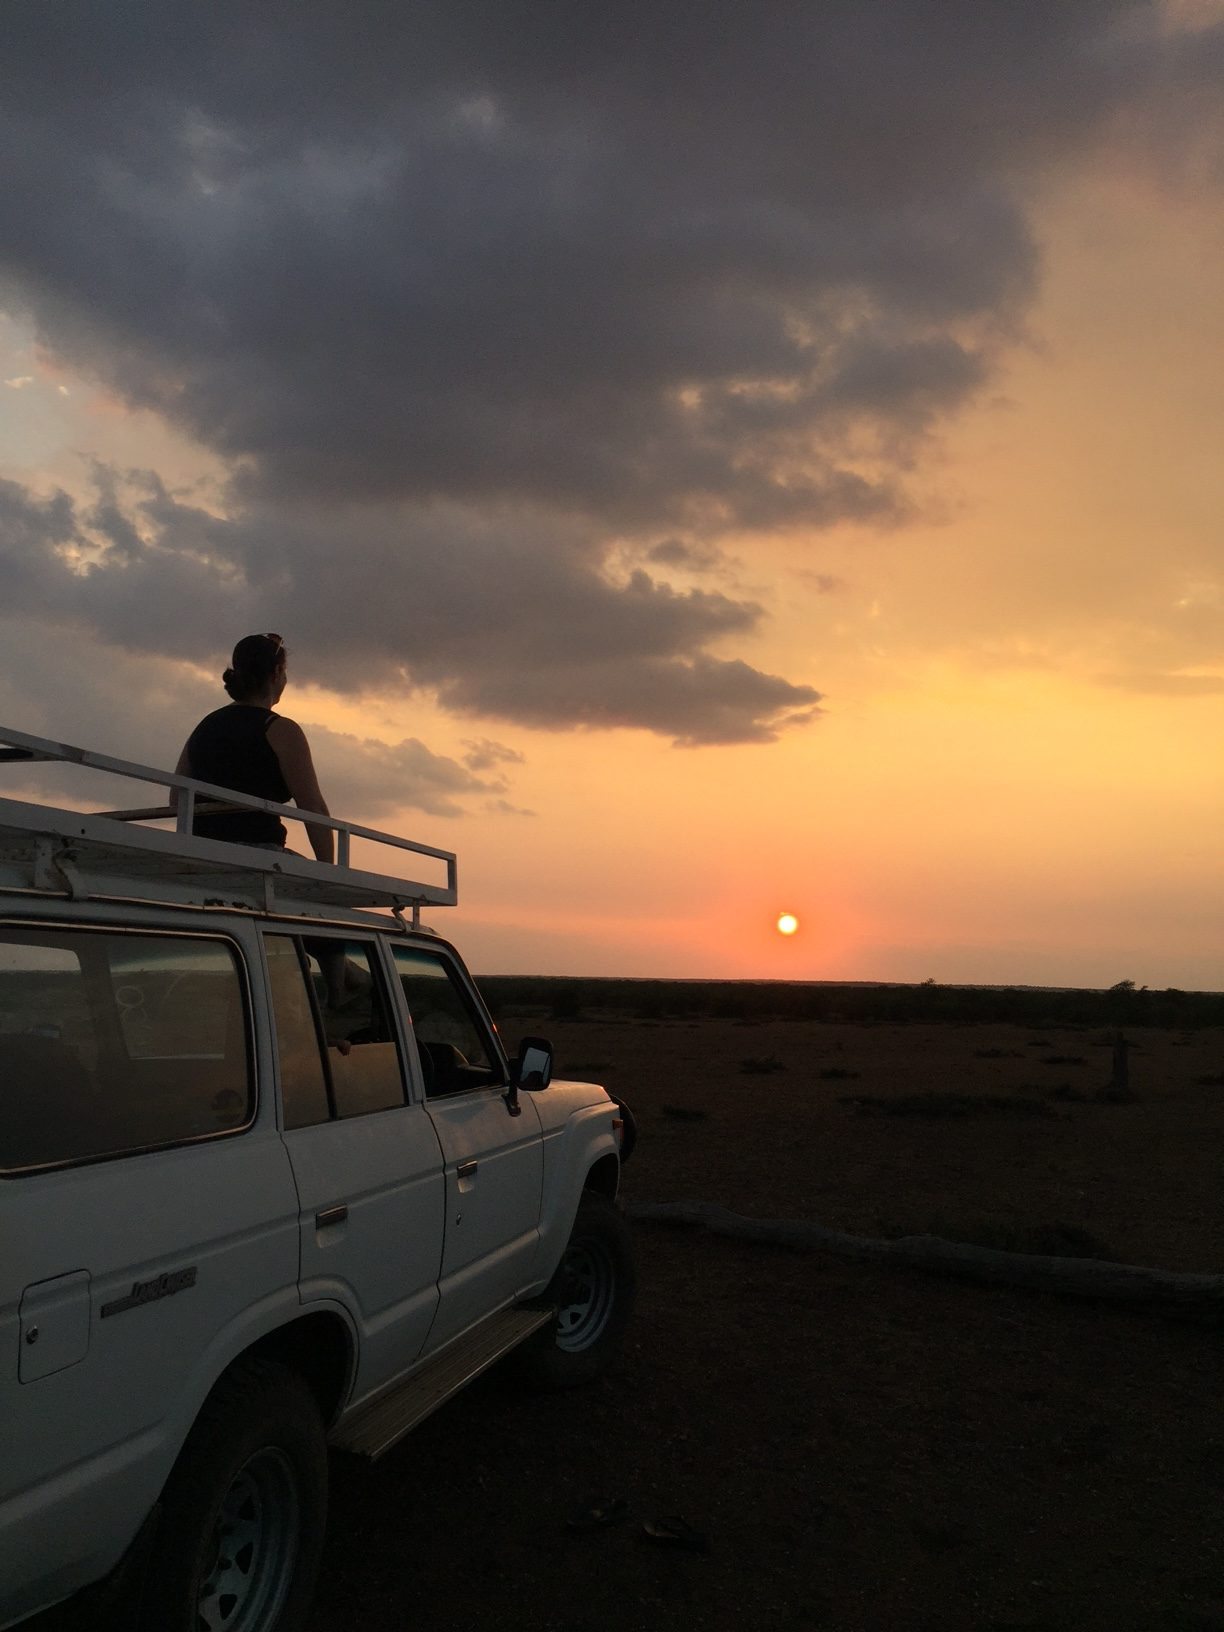 Admiring the sunset over Kruger